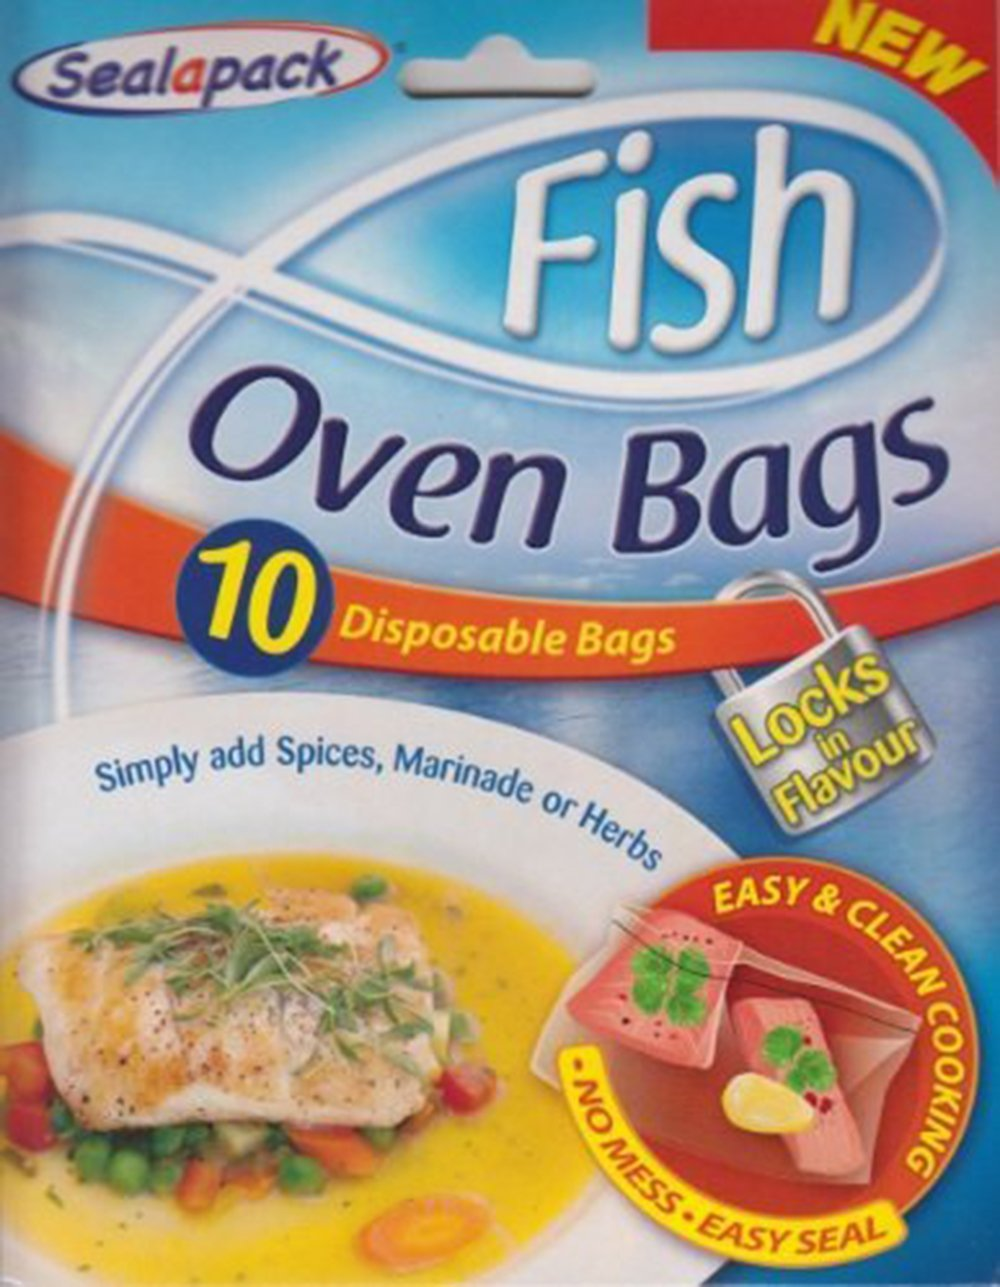 Sealapack fish oven bags 10 disposable bags no mess for Fish in a bag